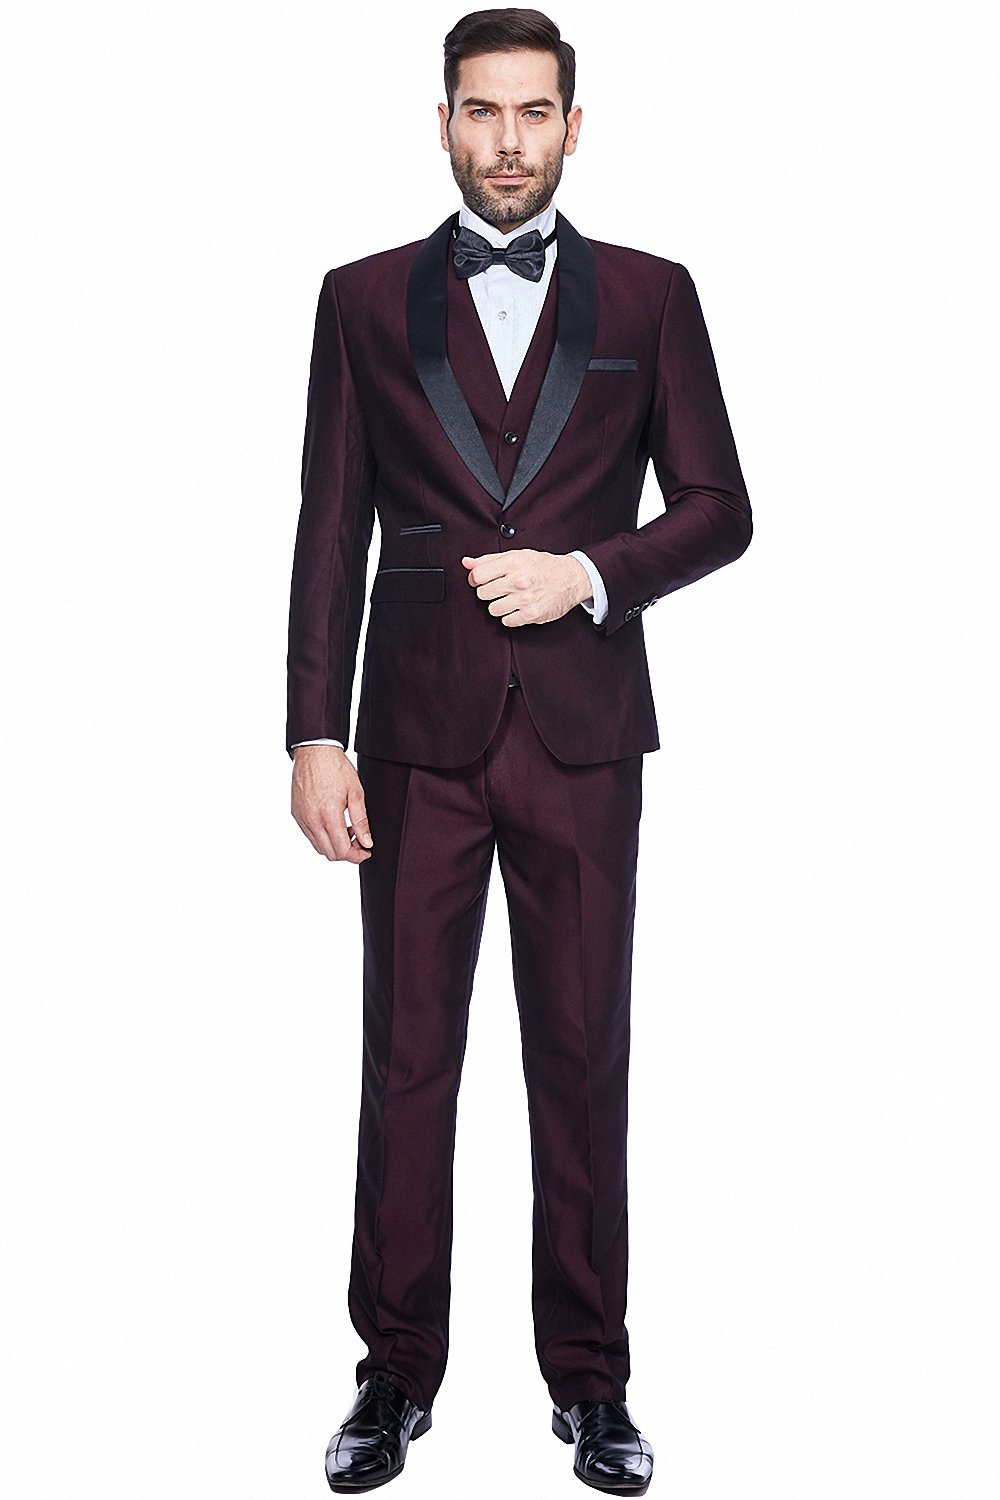 WEEN CHARM Men's 3-Piece Suit Slim Fit Shawl Lapel One Button Vested Dress Suit Set Blazer Jacket Pants Tux Vest by WEEN CHARM